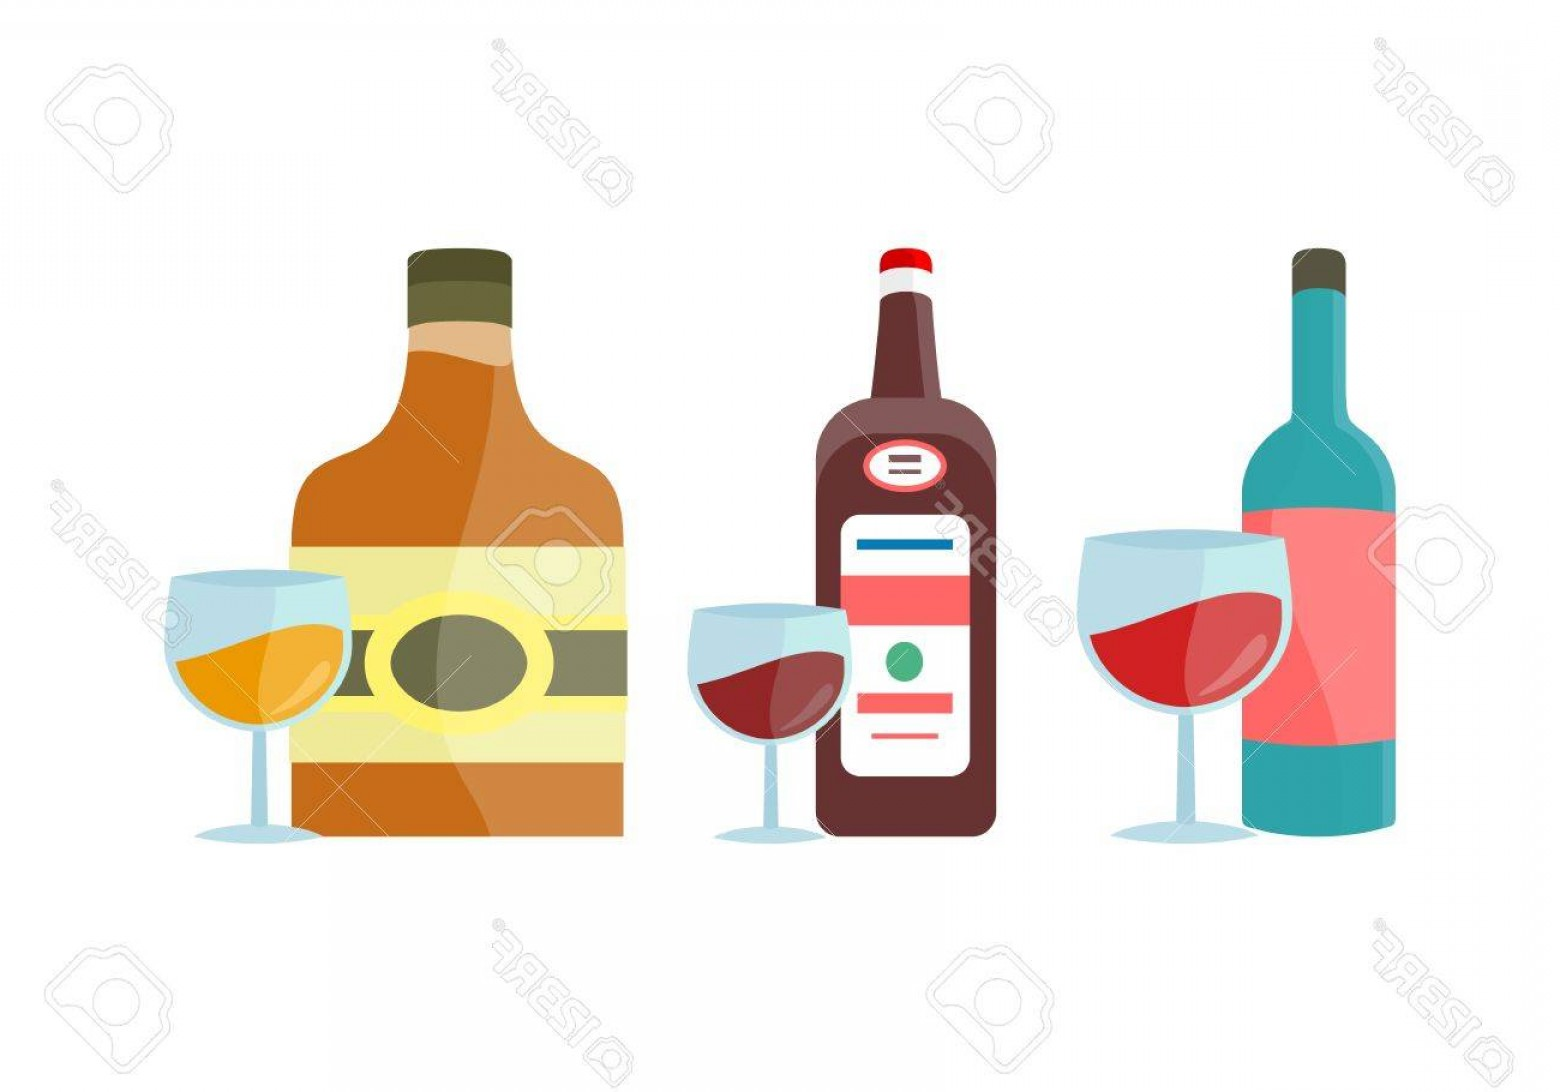 Alcohol Vector: Photostock Vector Bottles And Goblet With Alcohol Vector In Flat Style Whiskey Liquor Wine Cognac Illustration For Bev